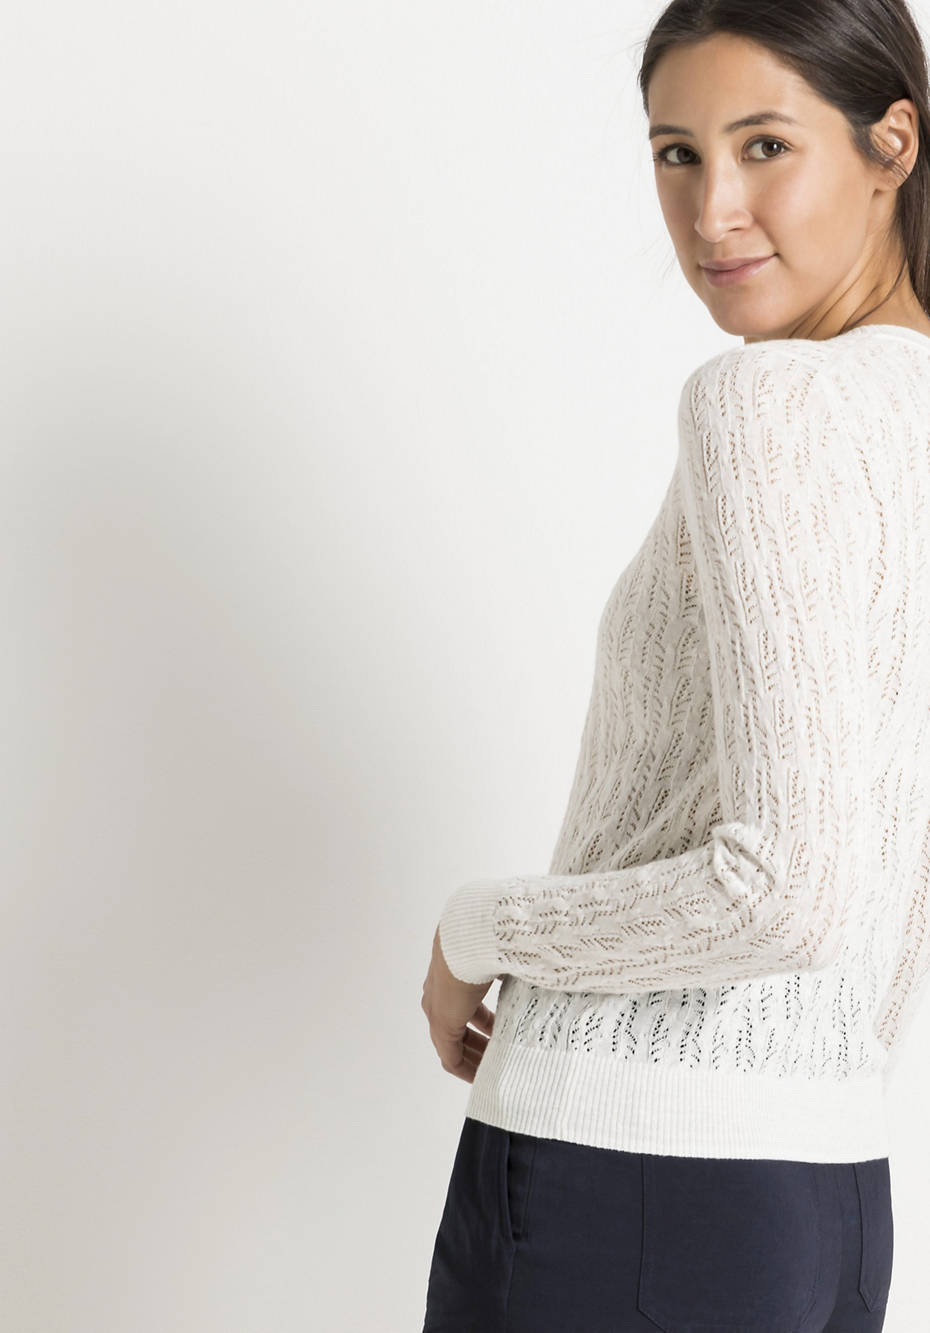 Ajour sweater made of hemp with organic cotton